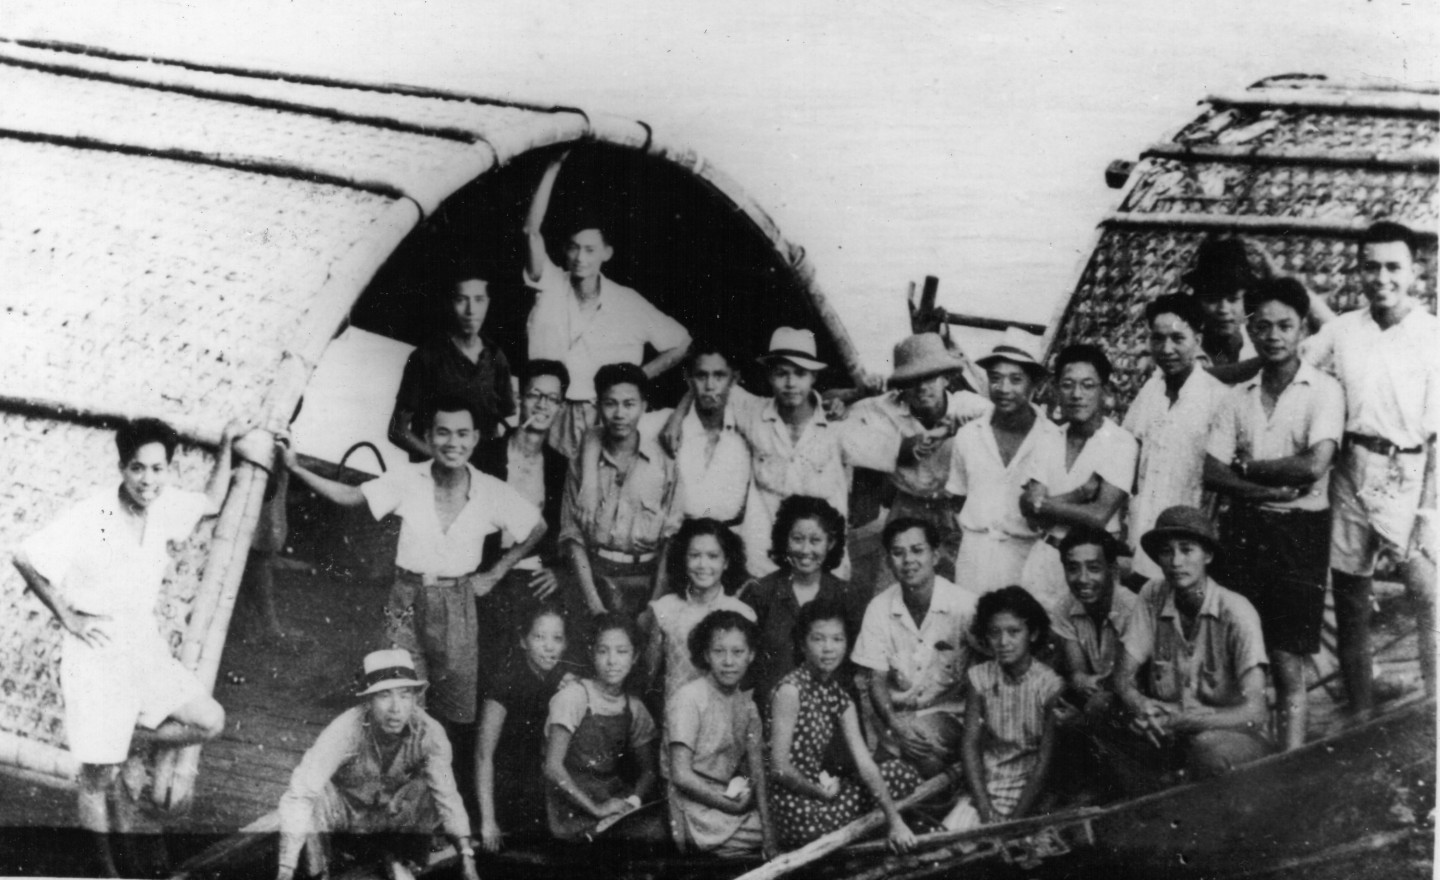 In the summer of 1942, I fleed HKG with a group of 25 HKU students.